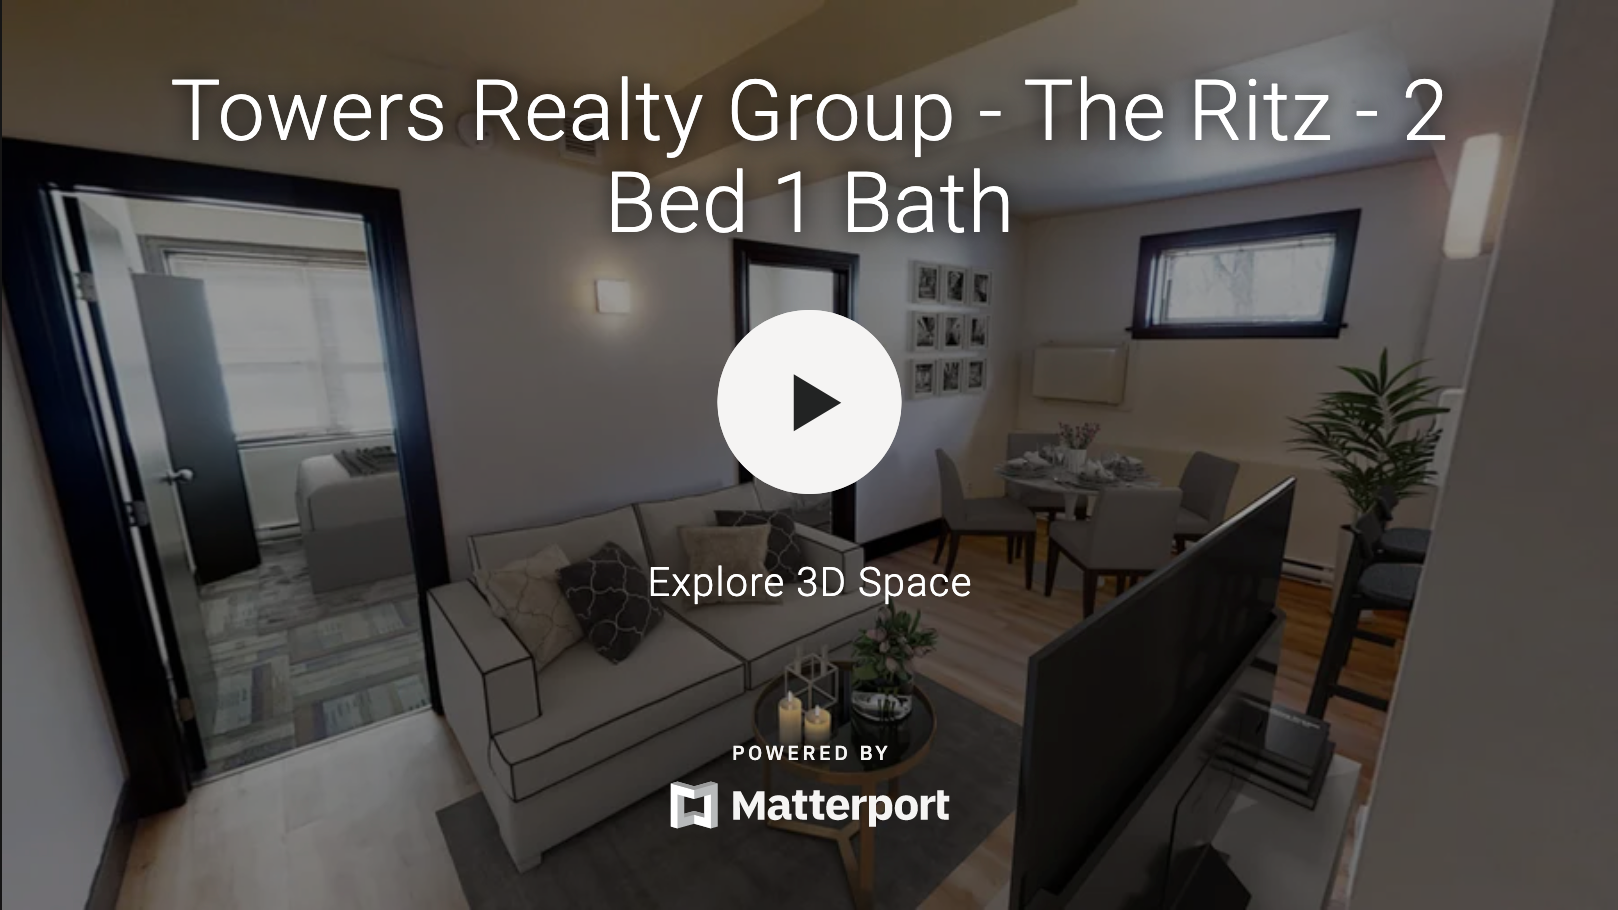 Towers Realty Group - The Ritz - 3D Tour - 2 bedroom